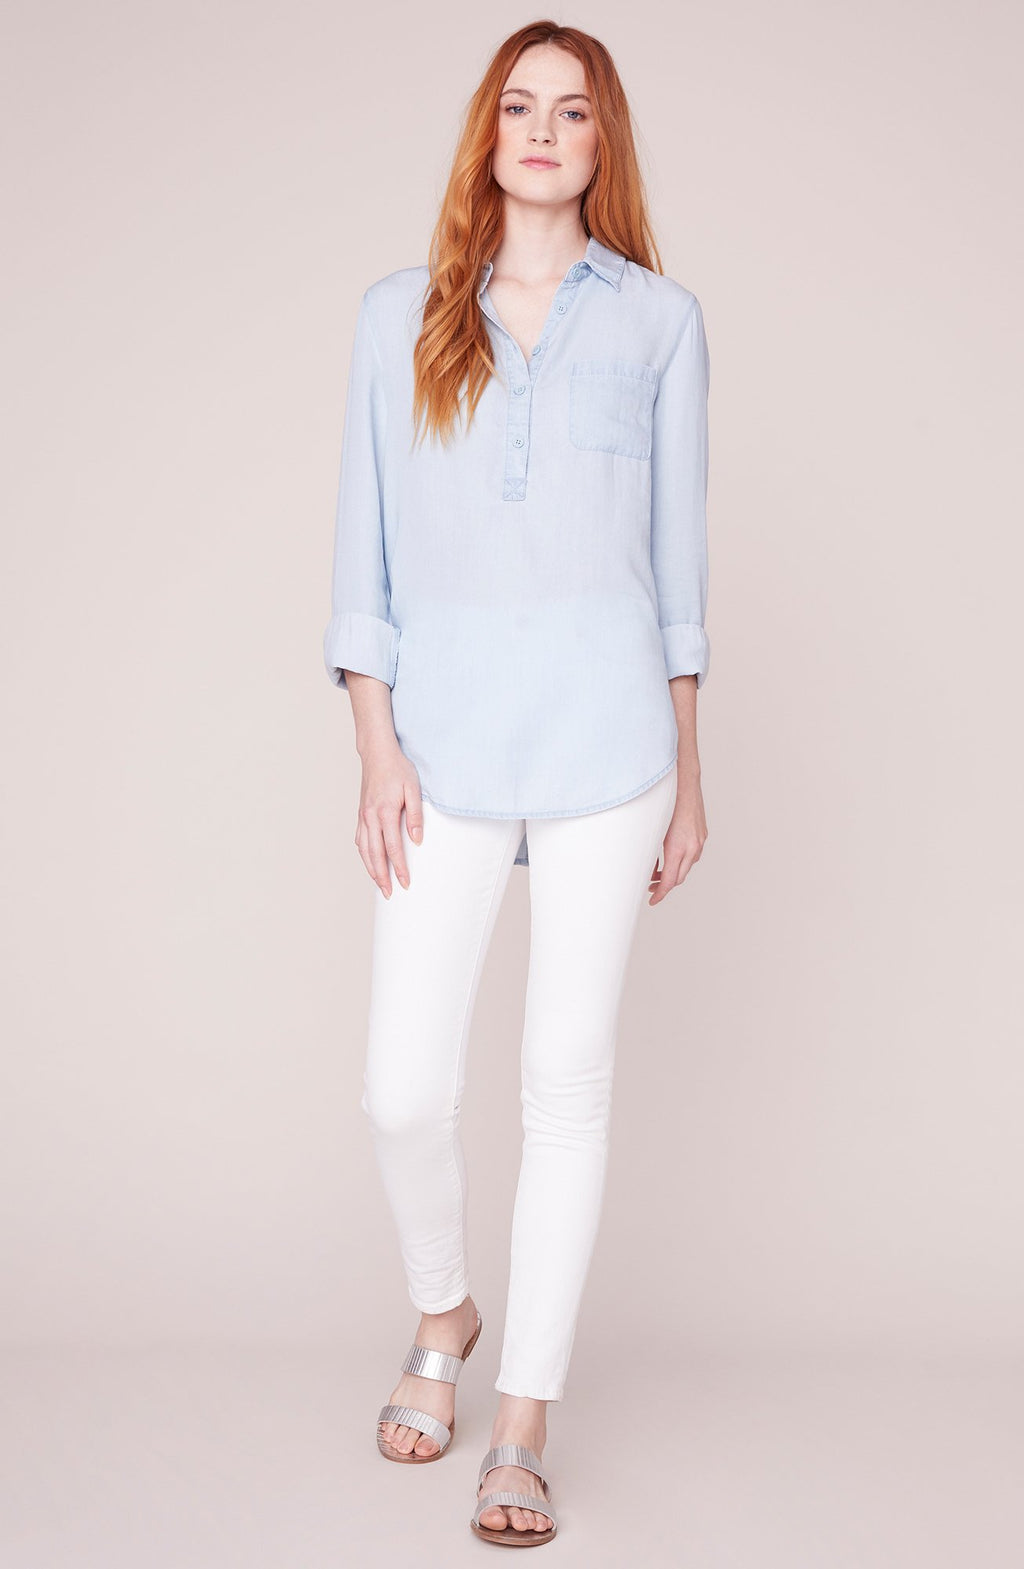 JACK BY BB DAKOTA Wash My Worries Chambray Tunic